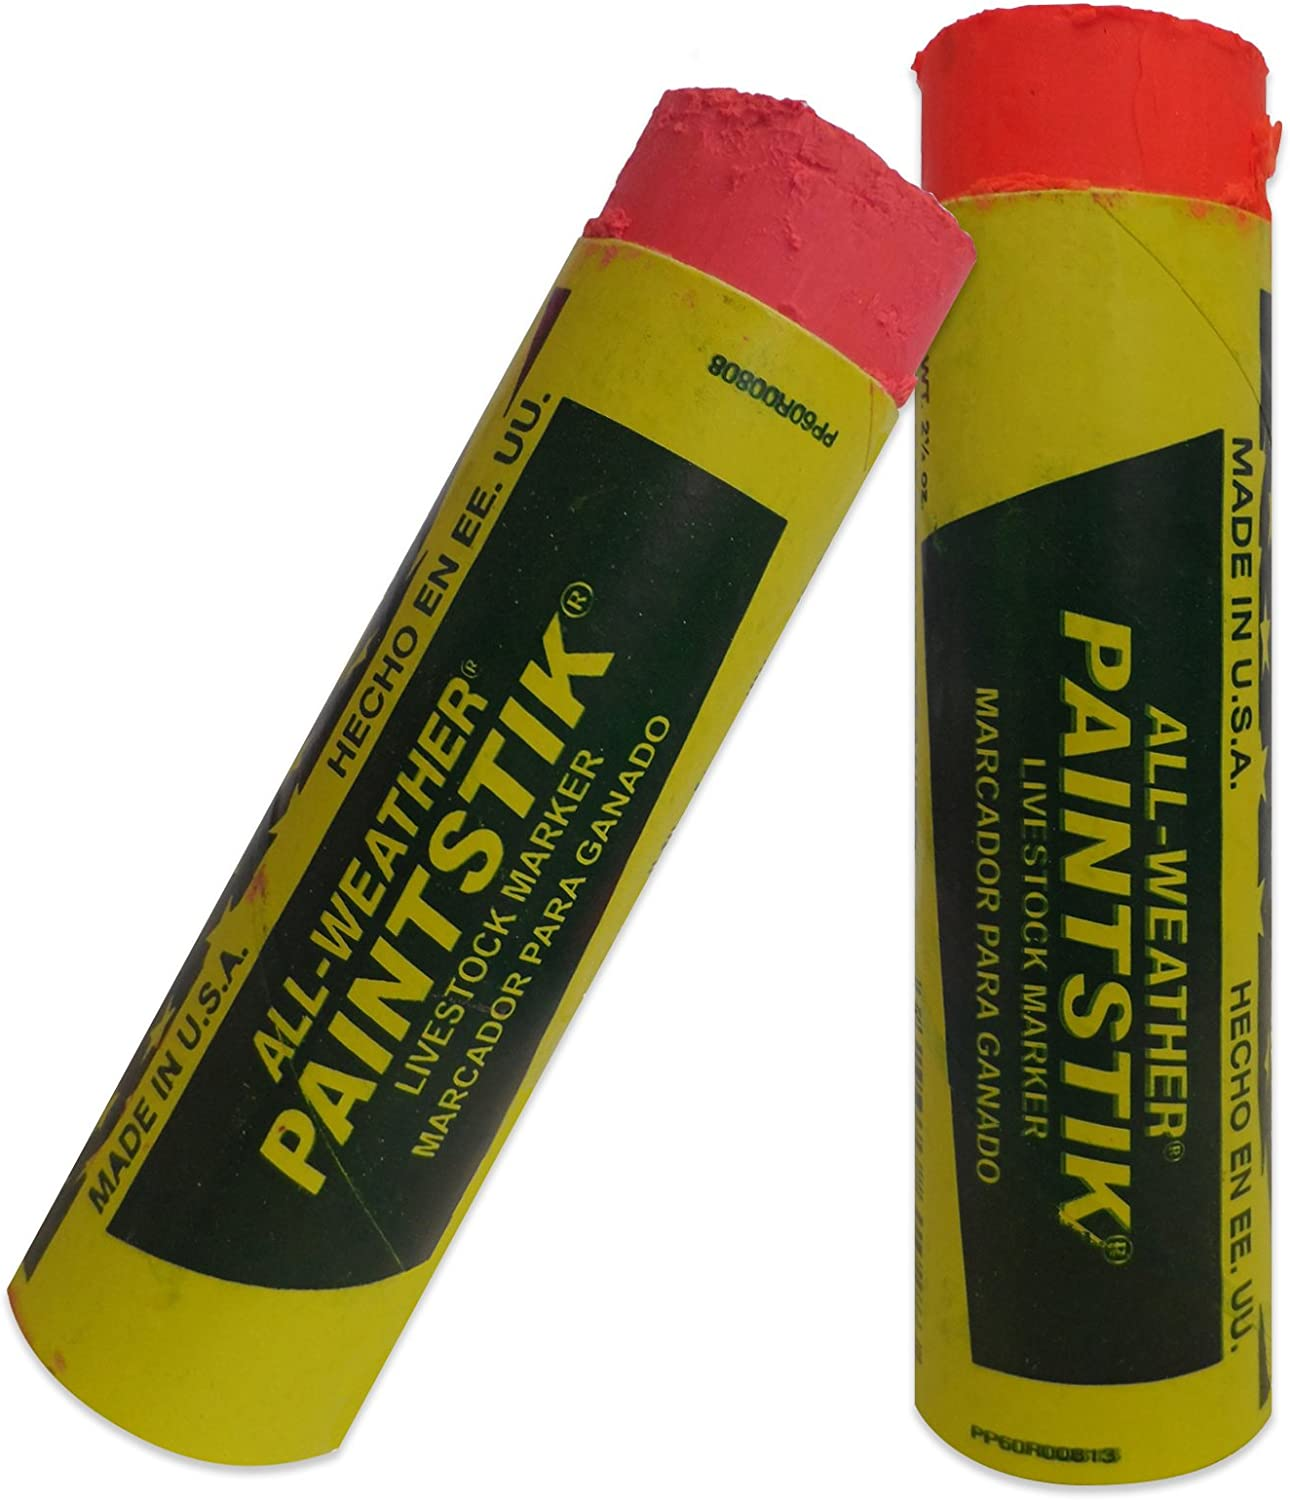 Sheep and Pigs /& Tigerbox/® Antibacterial Pen. All Weather Paintstik Fluoro Orange Livestock Marker for Cattle